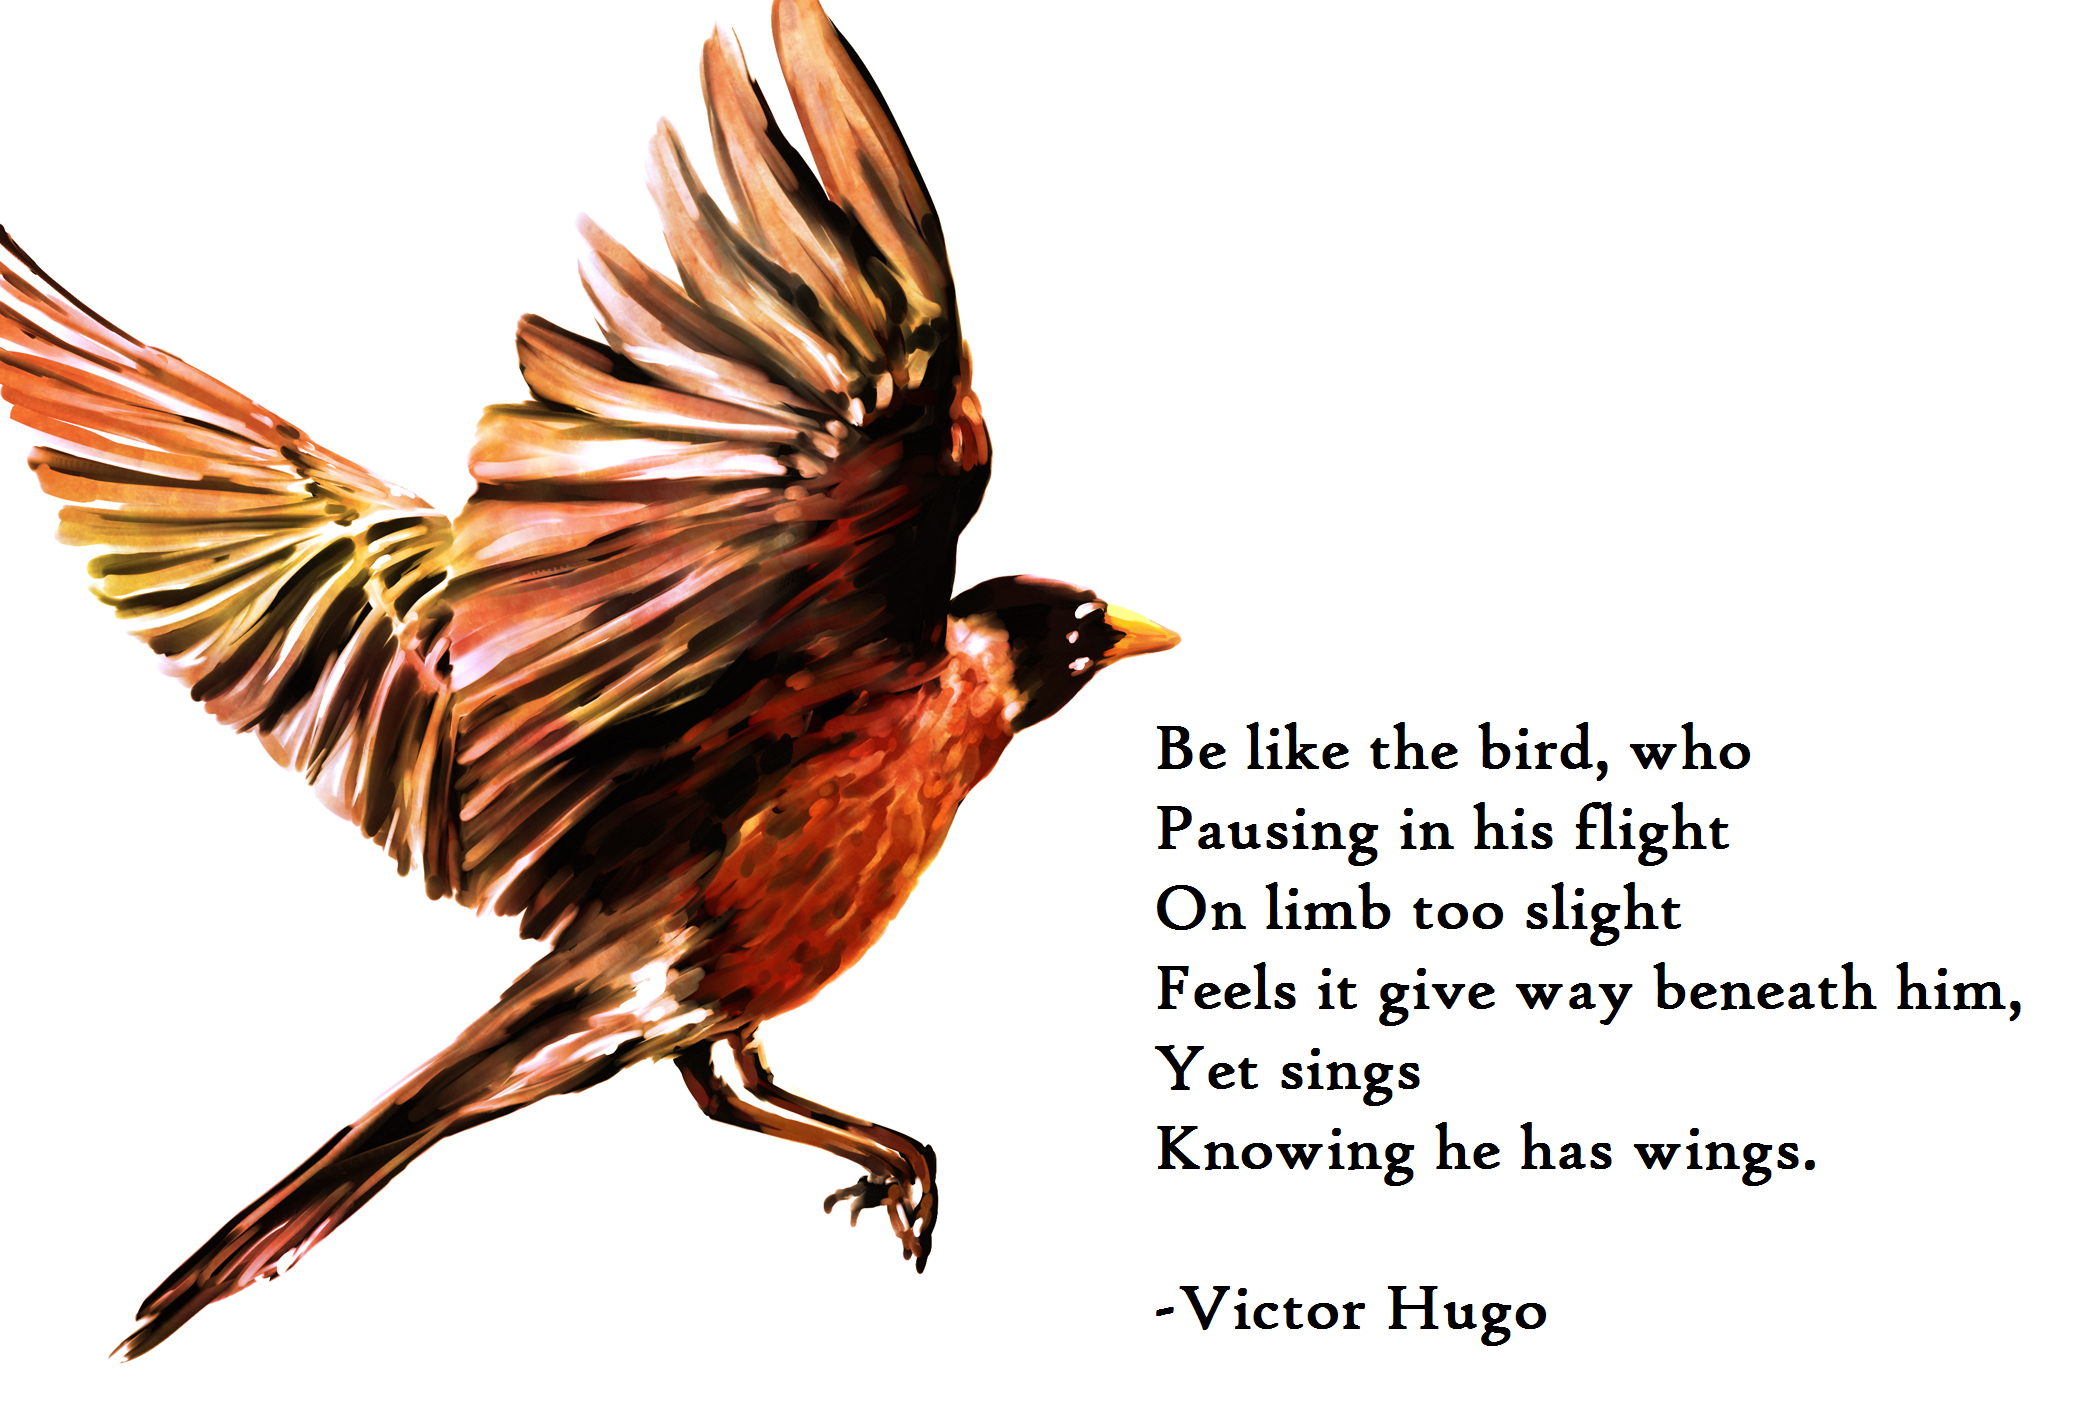 Quotes About Love And Birds Quotesgram: Bird Victor Hugo Quotes. QuotesGram